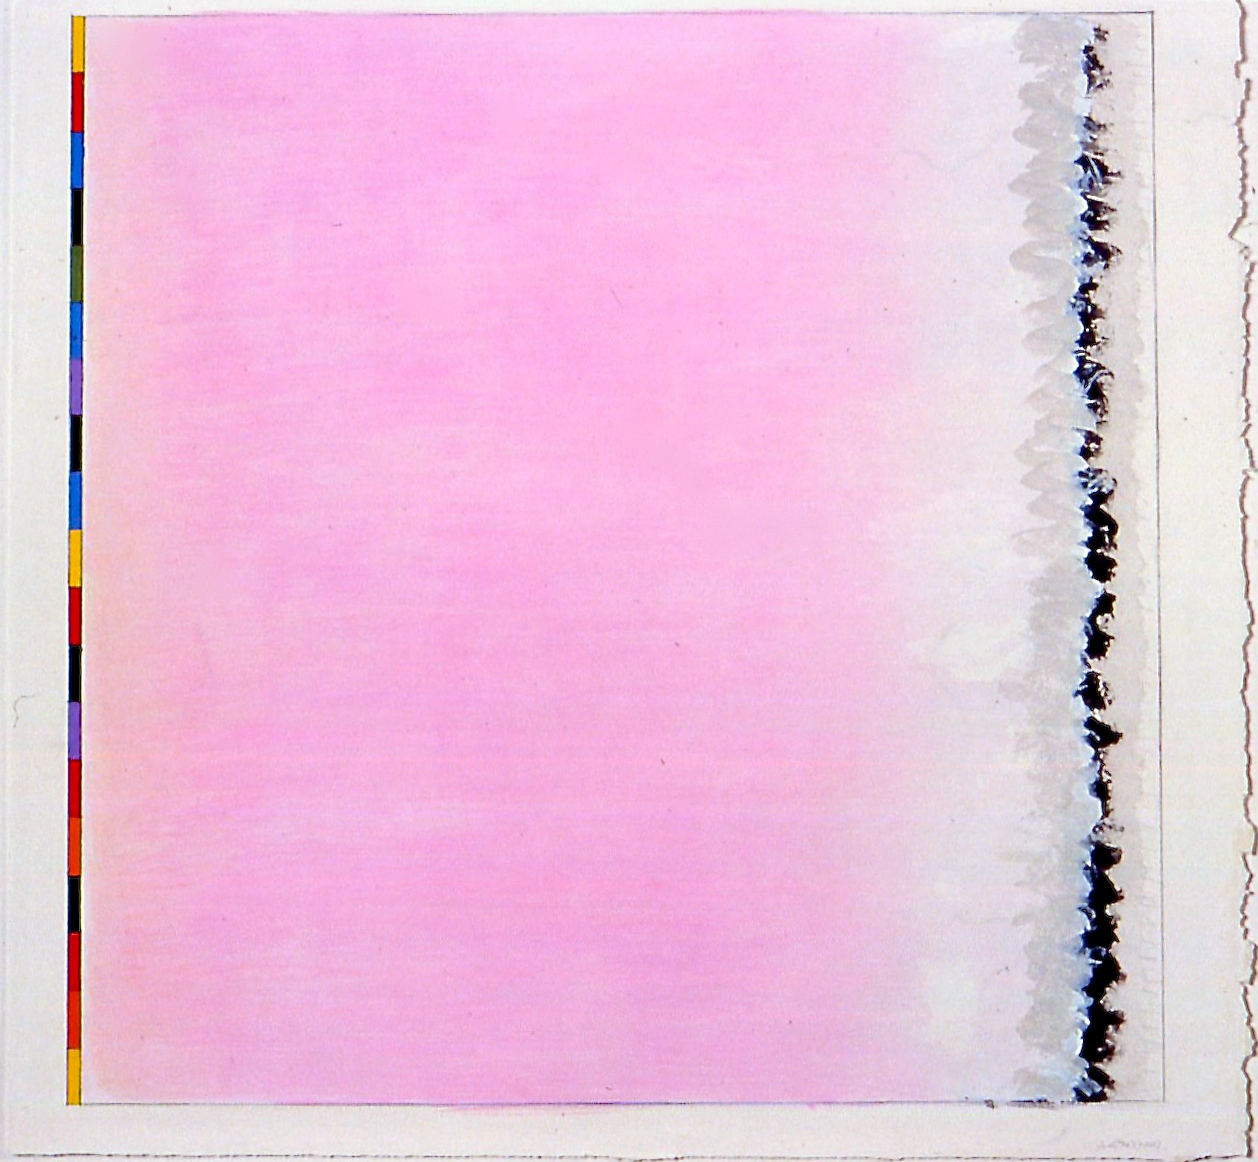 """Untitled (PG8), 2002, gouache on paper, 494mmx500mm (image),  21""""x22 1/4""""(paper)"""